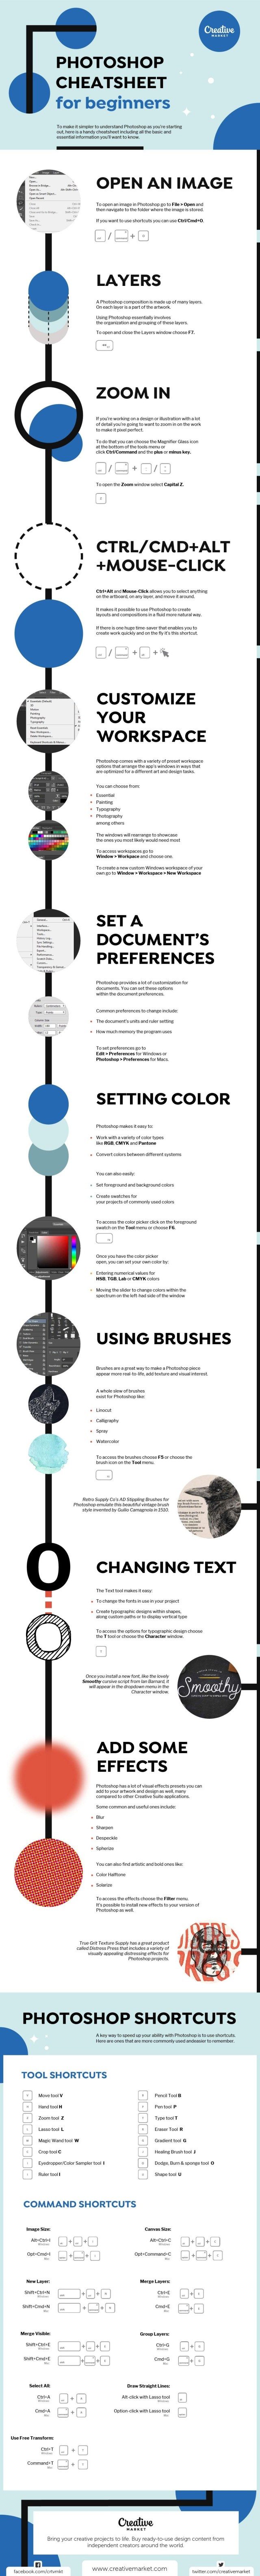 Photoshop Cheatsheet info